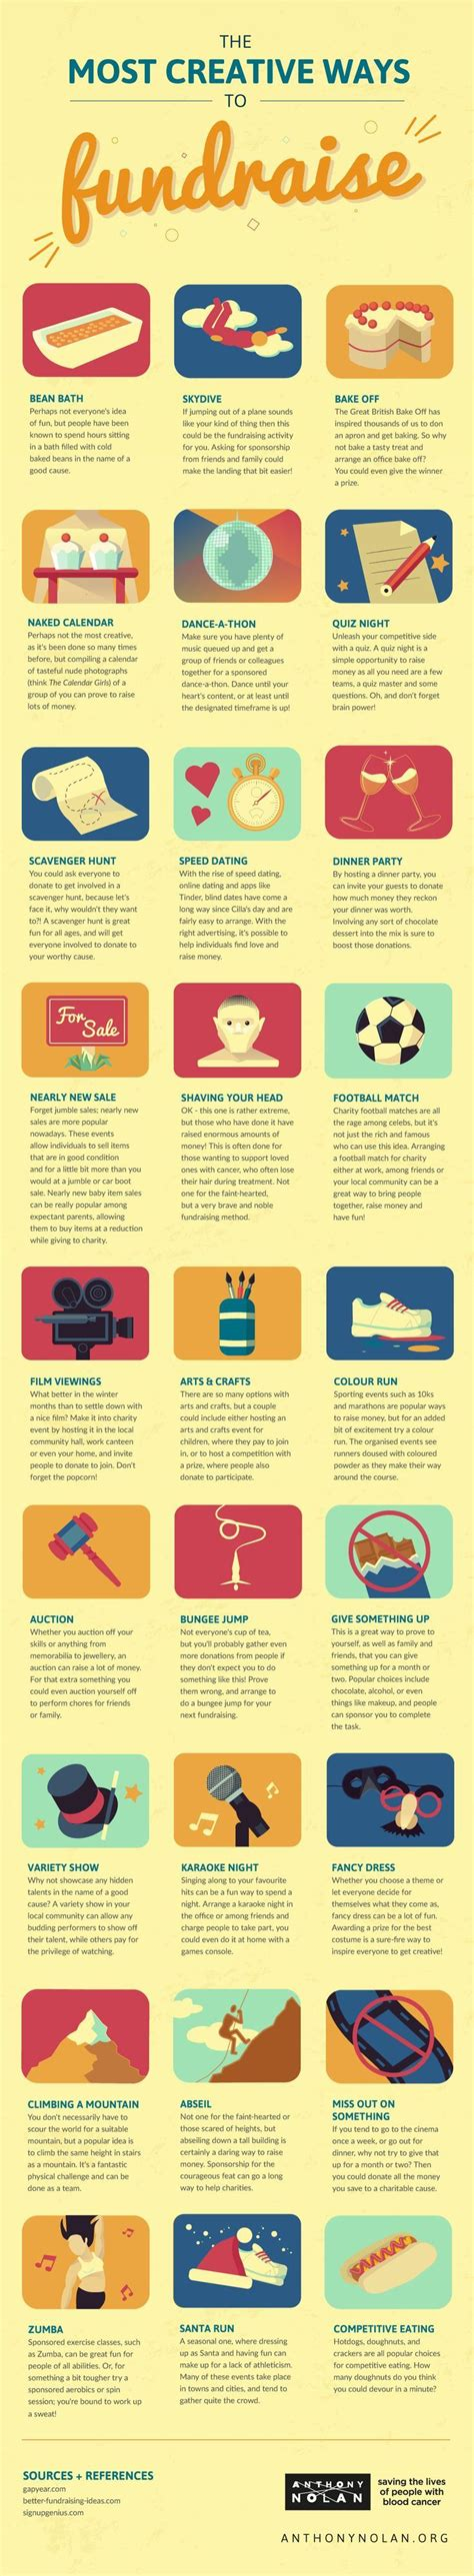 Creative Fundraising Letter Ideas the most creative ways to fundraise infographic